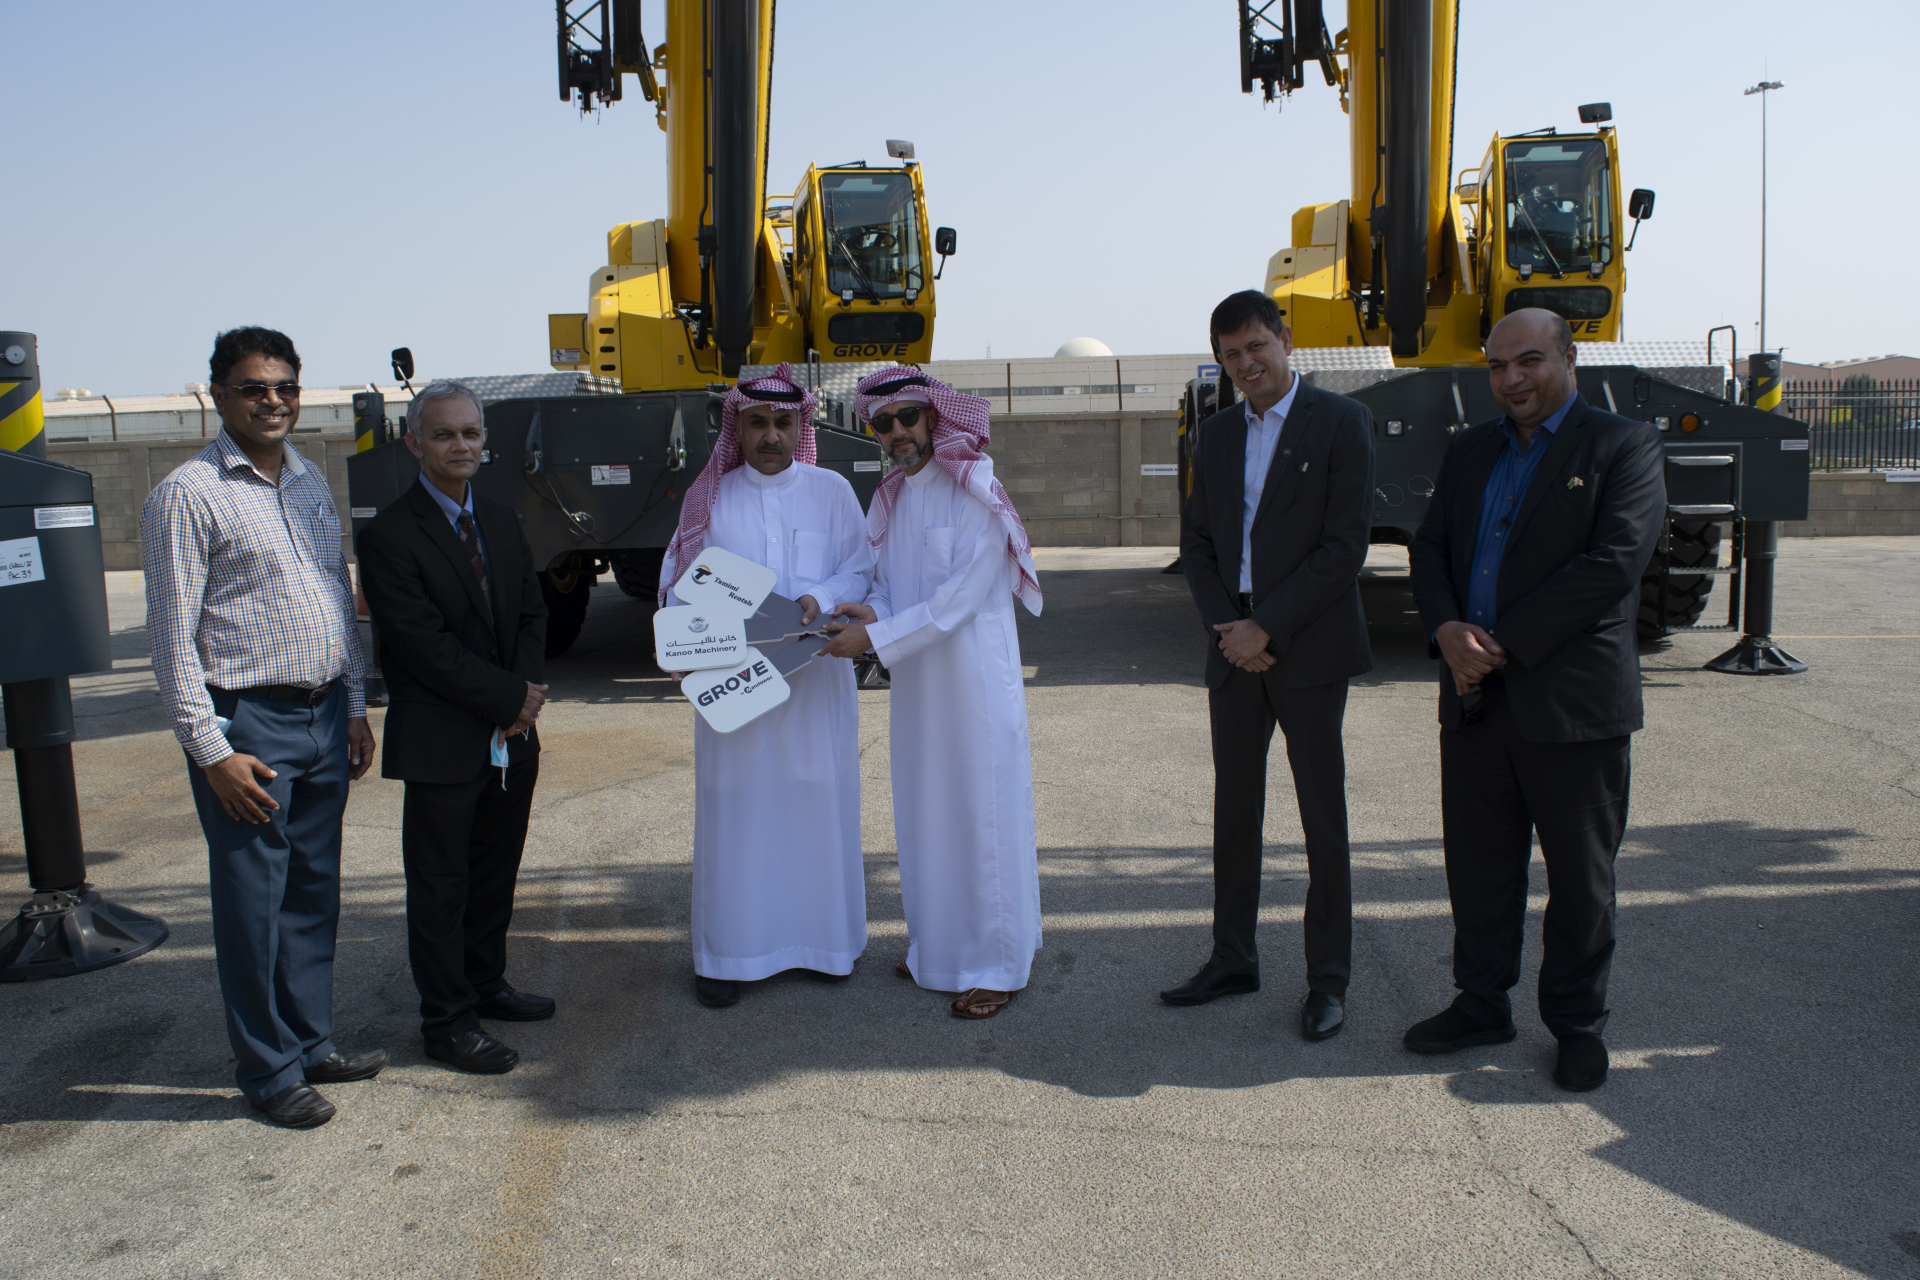 Fahad S Al Tamimi & Partners Co (Tamimi Rentals) invests in Grove rough-terrain cranes to diversify its business